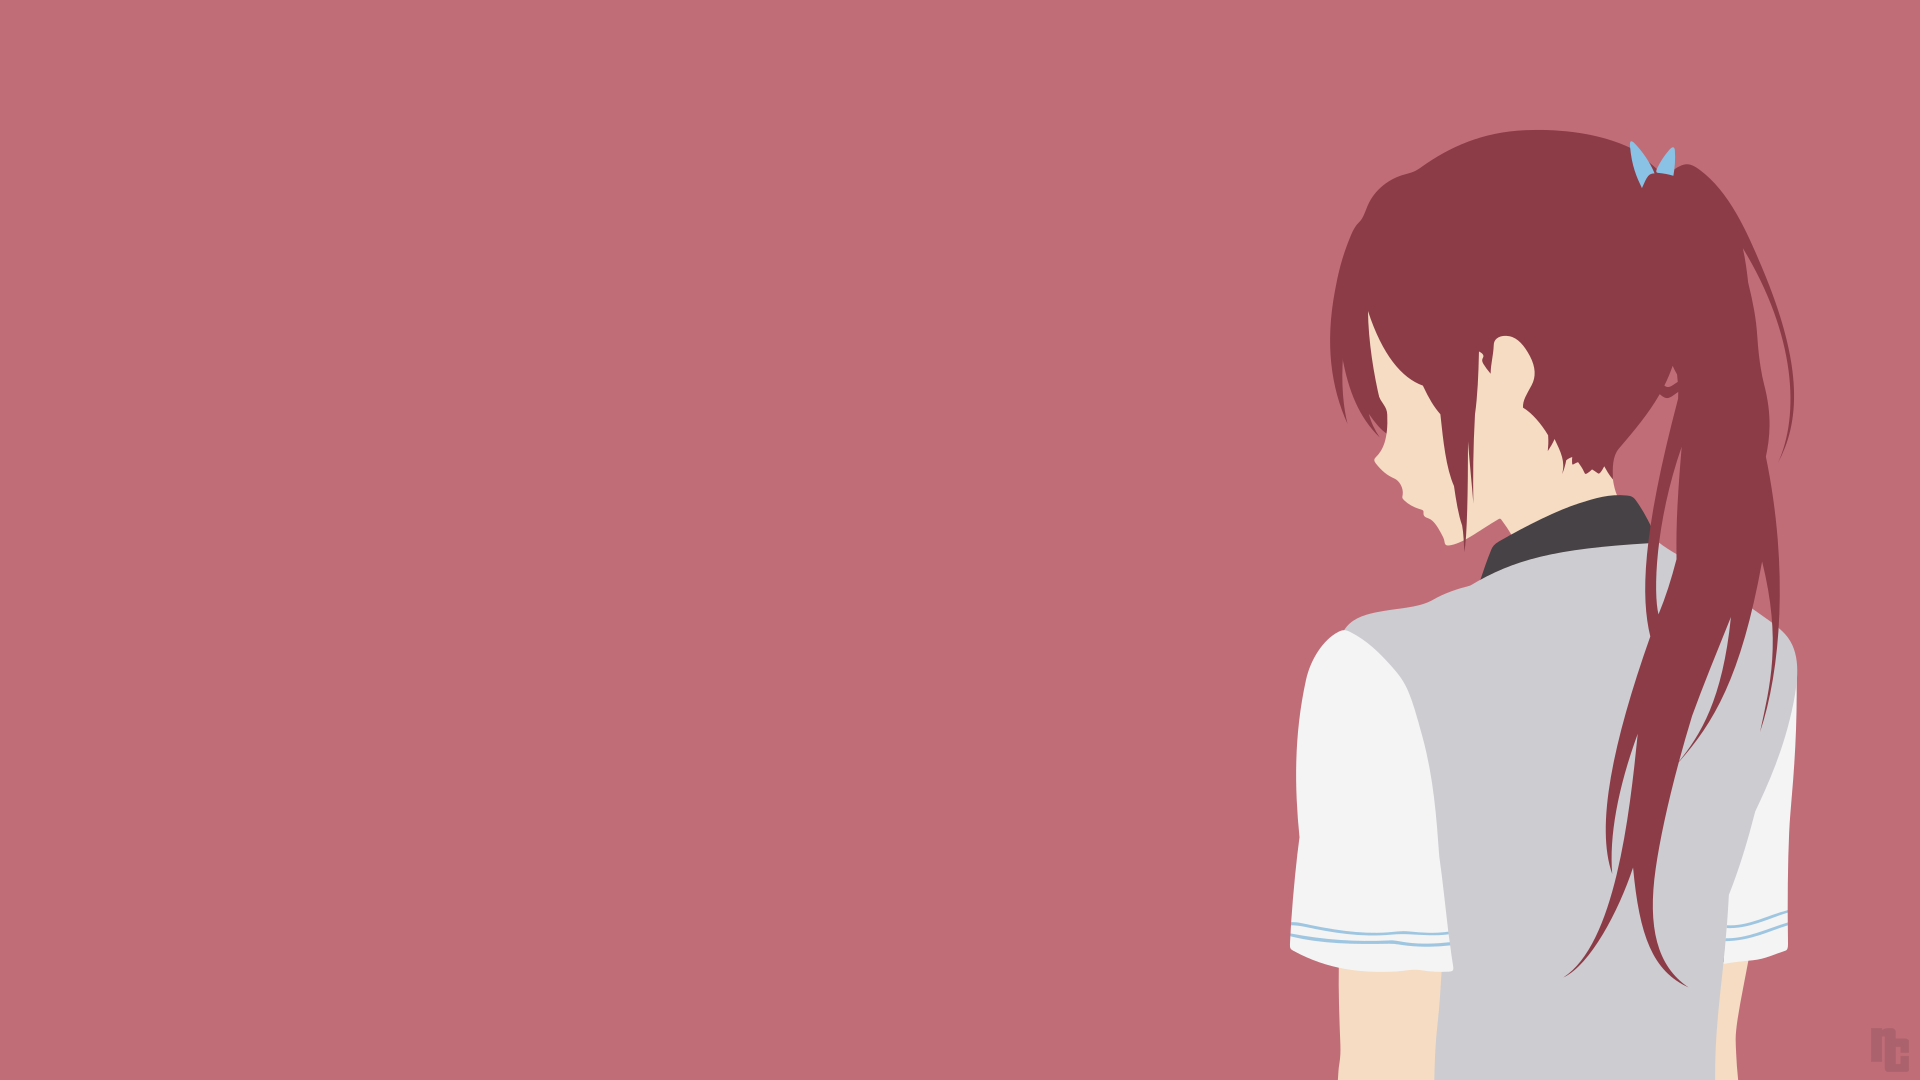 Free Gou Matsuoka Minimalist Wallpaper Until if/when funimation casts a different voice actor for rin, even if they are already through recording. ncoll36